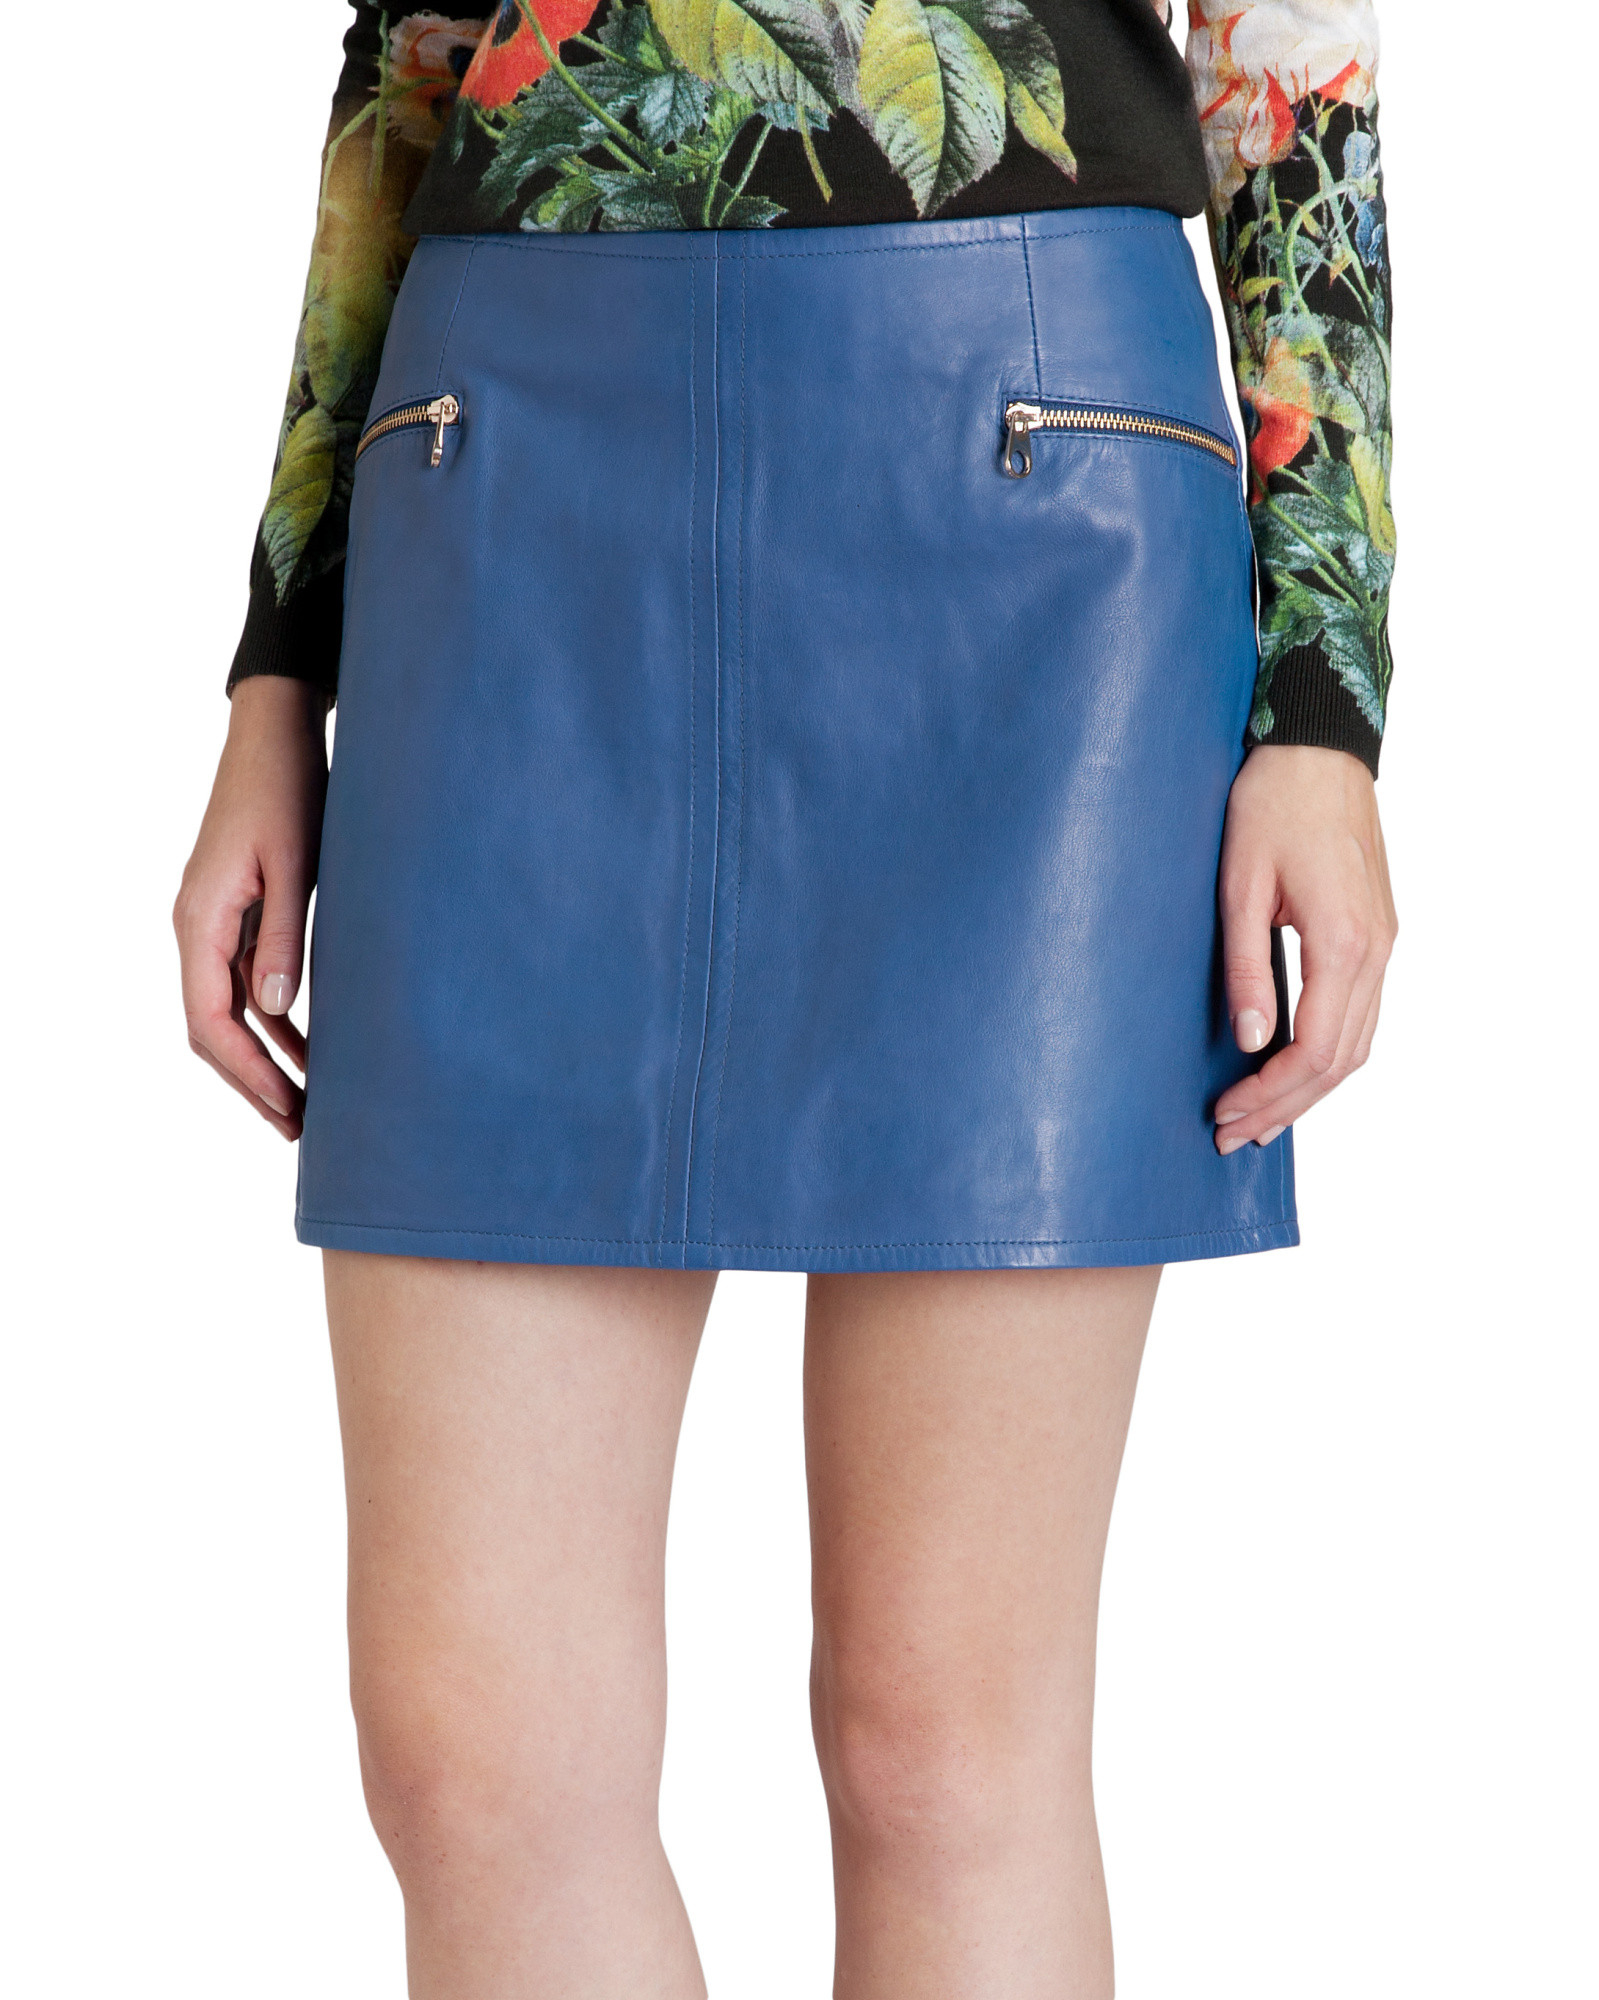 Ted baker Leather Mini Skirt in Blue | Lyst